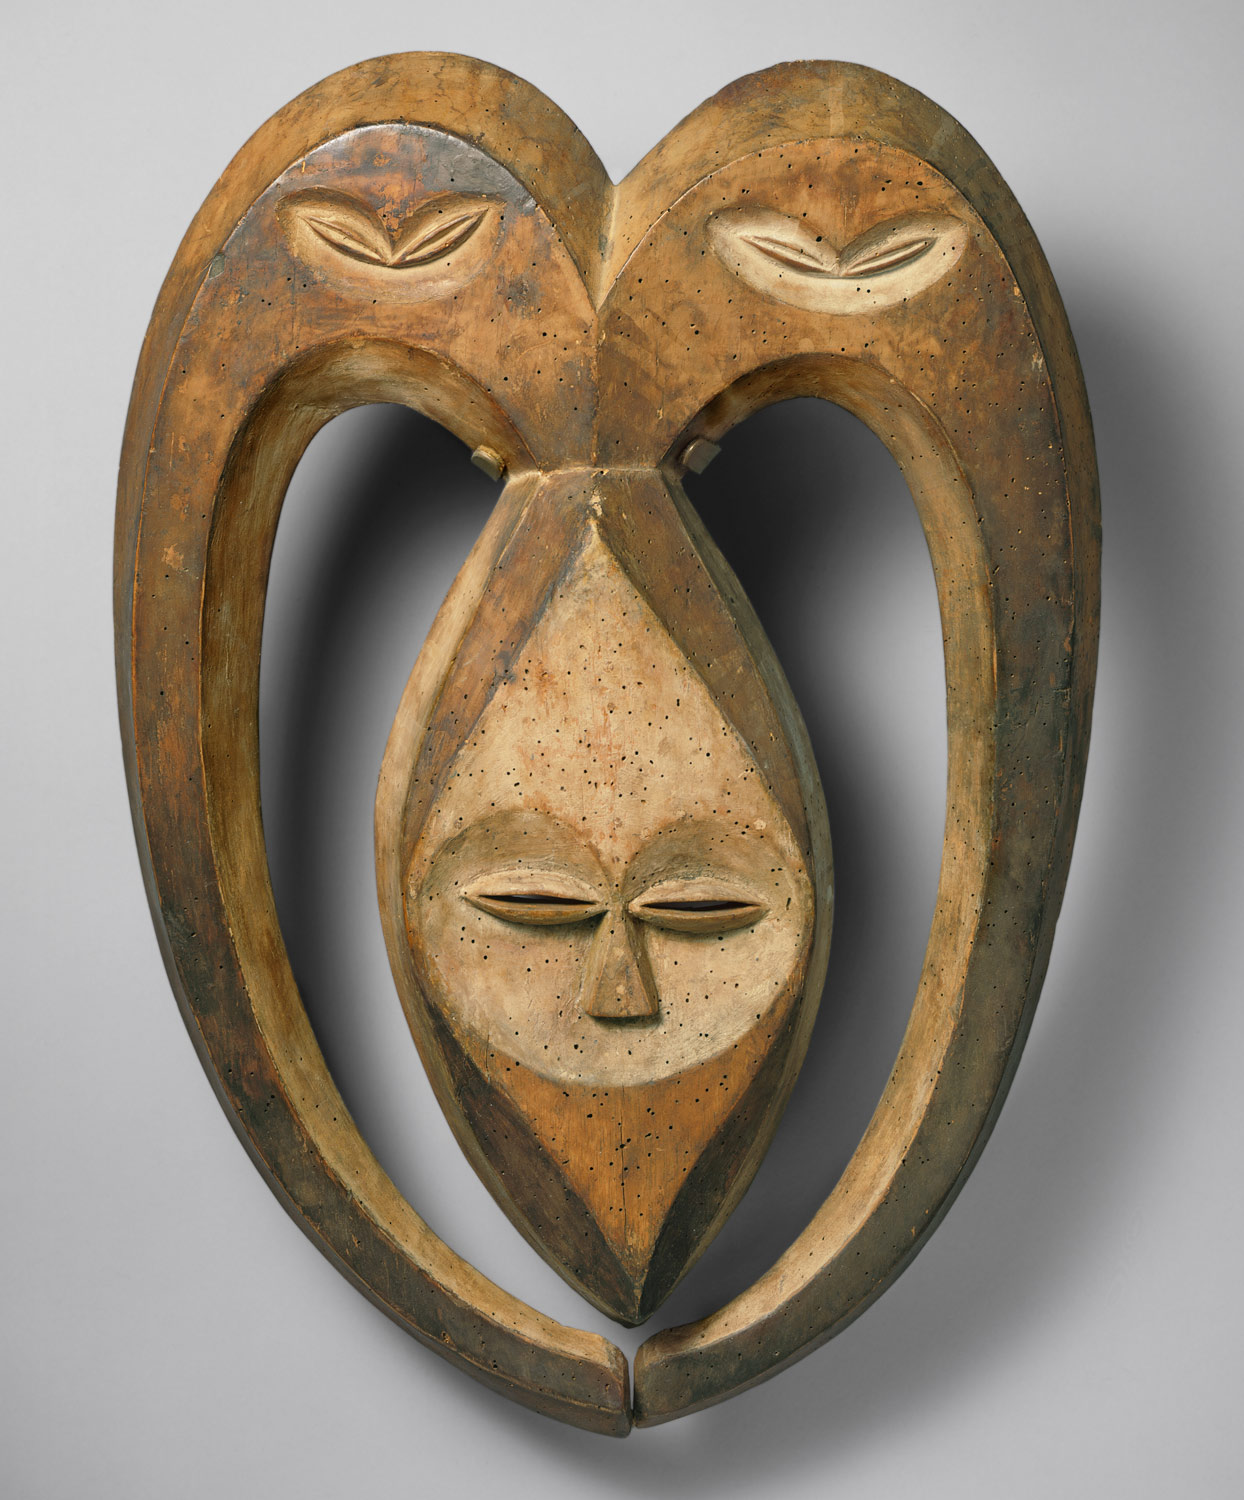 Beete Mask made of wood. The mask is heart-shaped and long, and the only facial features are the eyes and nose.